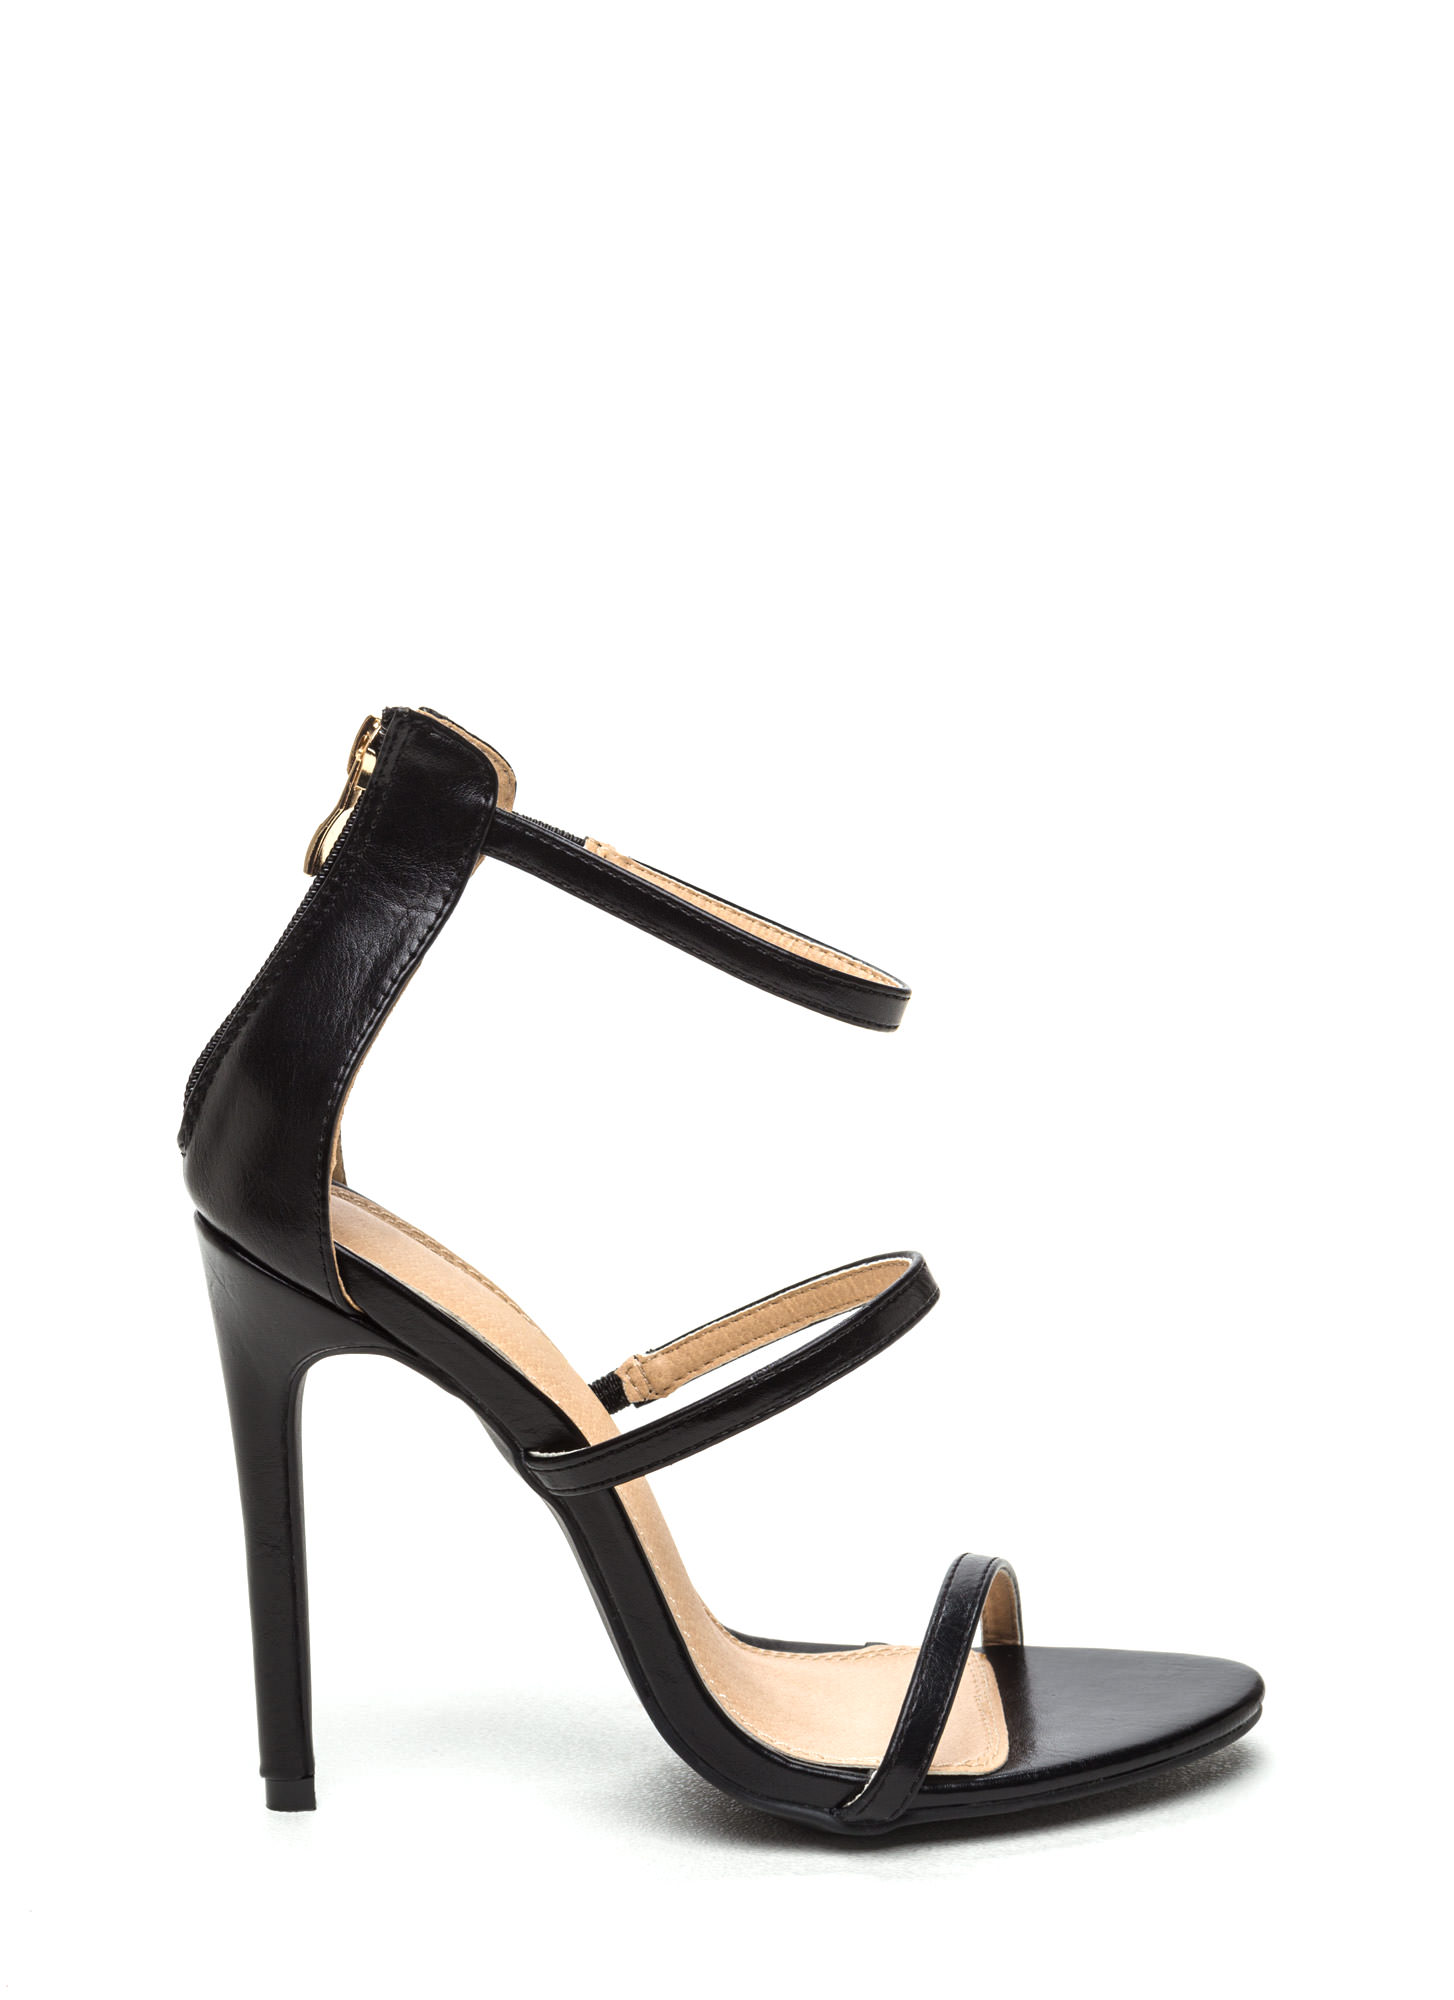 Strappy Heels Black - Is Heel